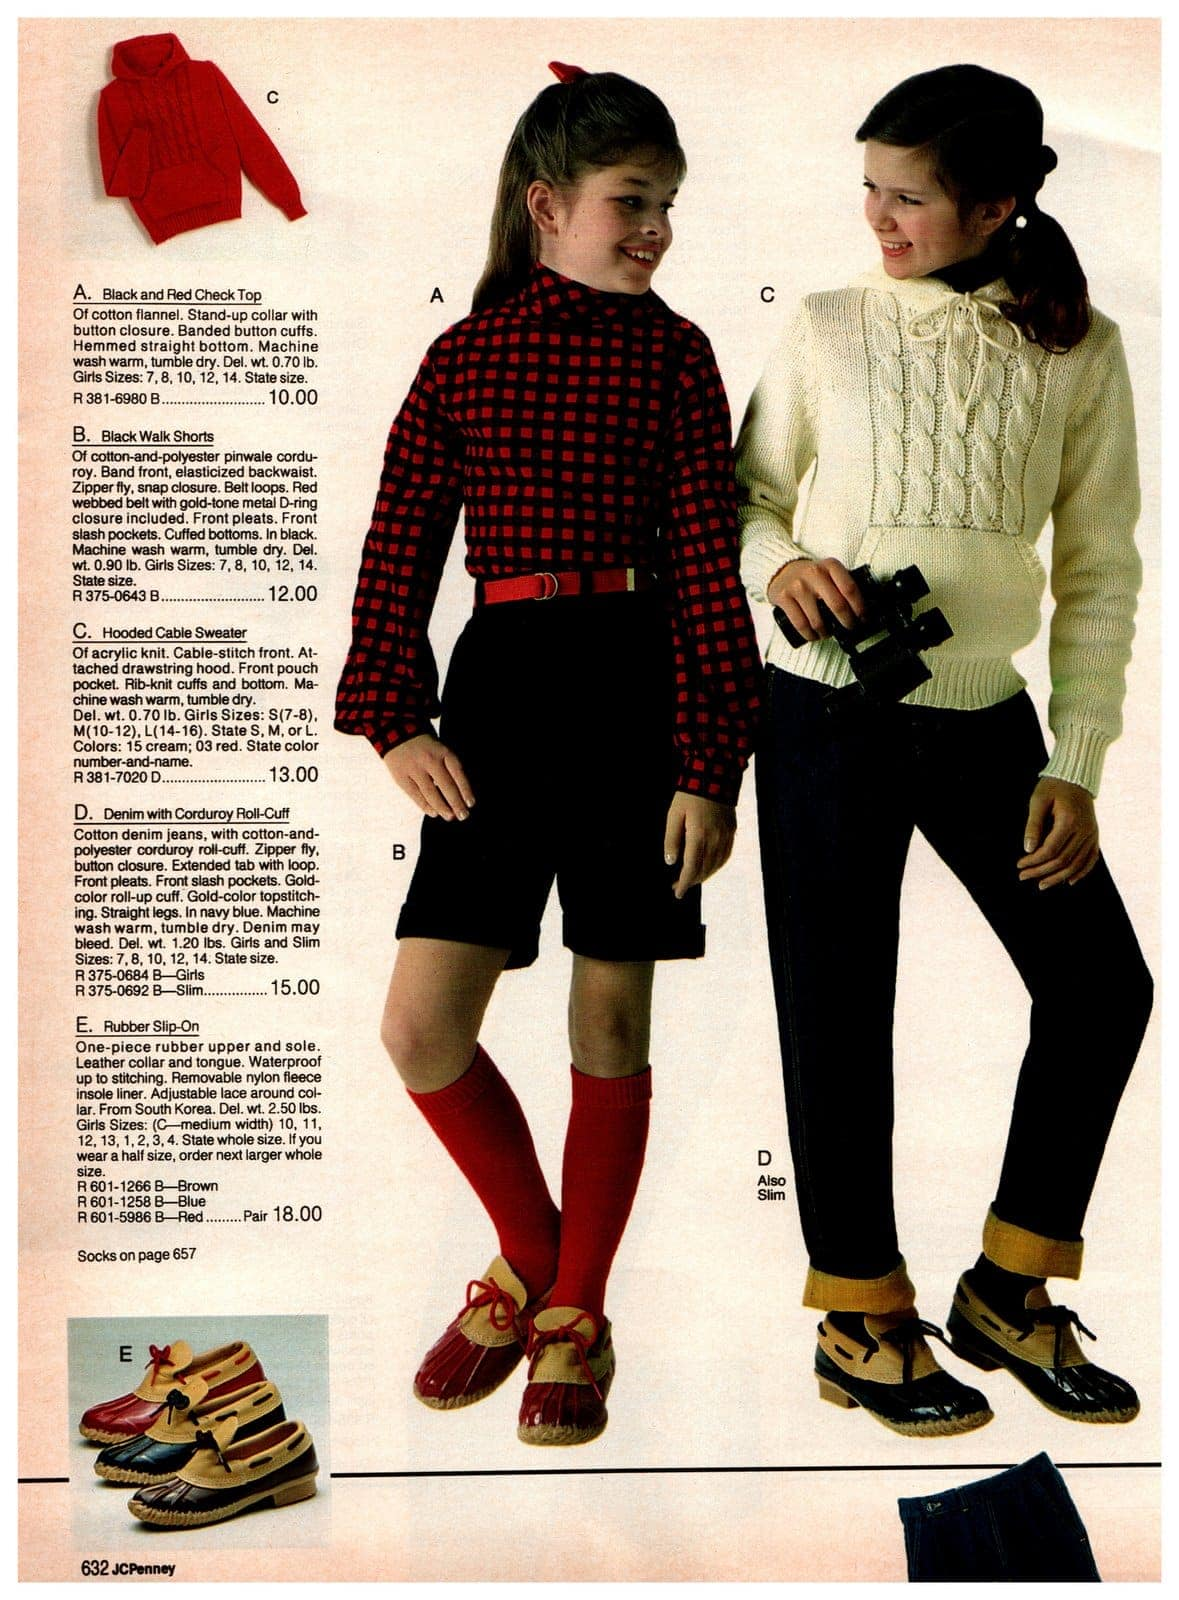 Black and red checked tops, walk shorts, hooded cable sweaters and denim with corduroy roll cuffs